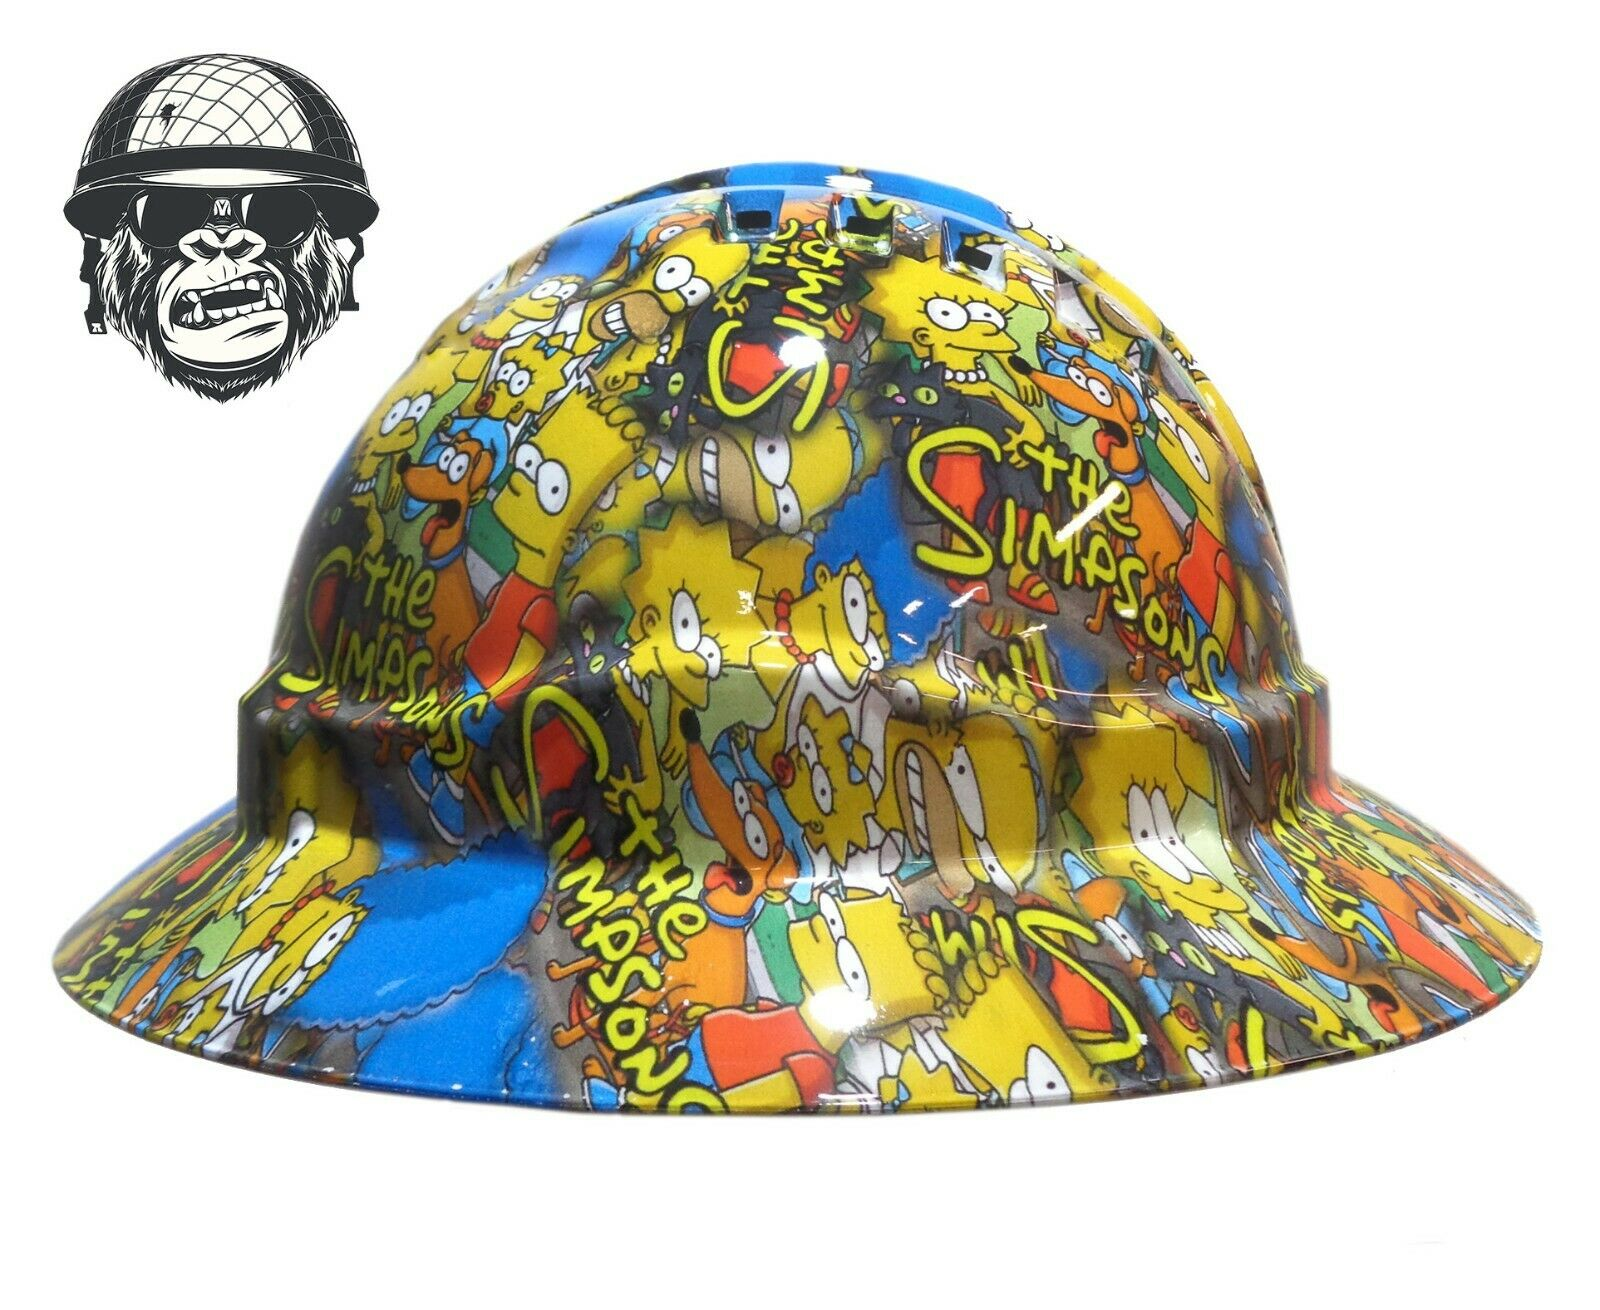 Custom Hydrographic Safety Hard Hat Construction Mining - SIMPSONS WIDE